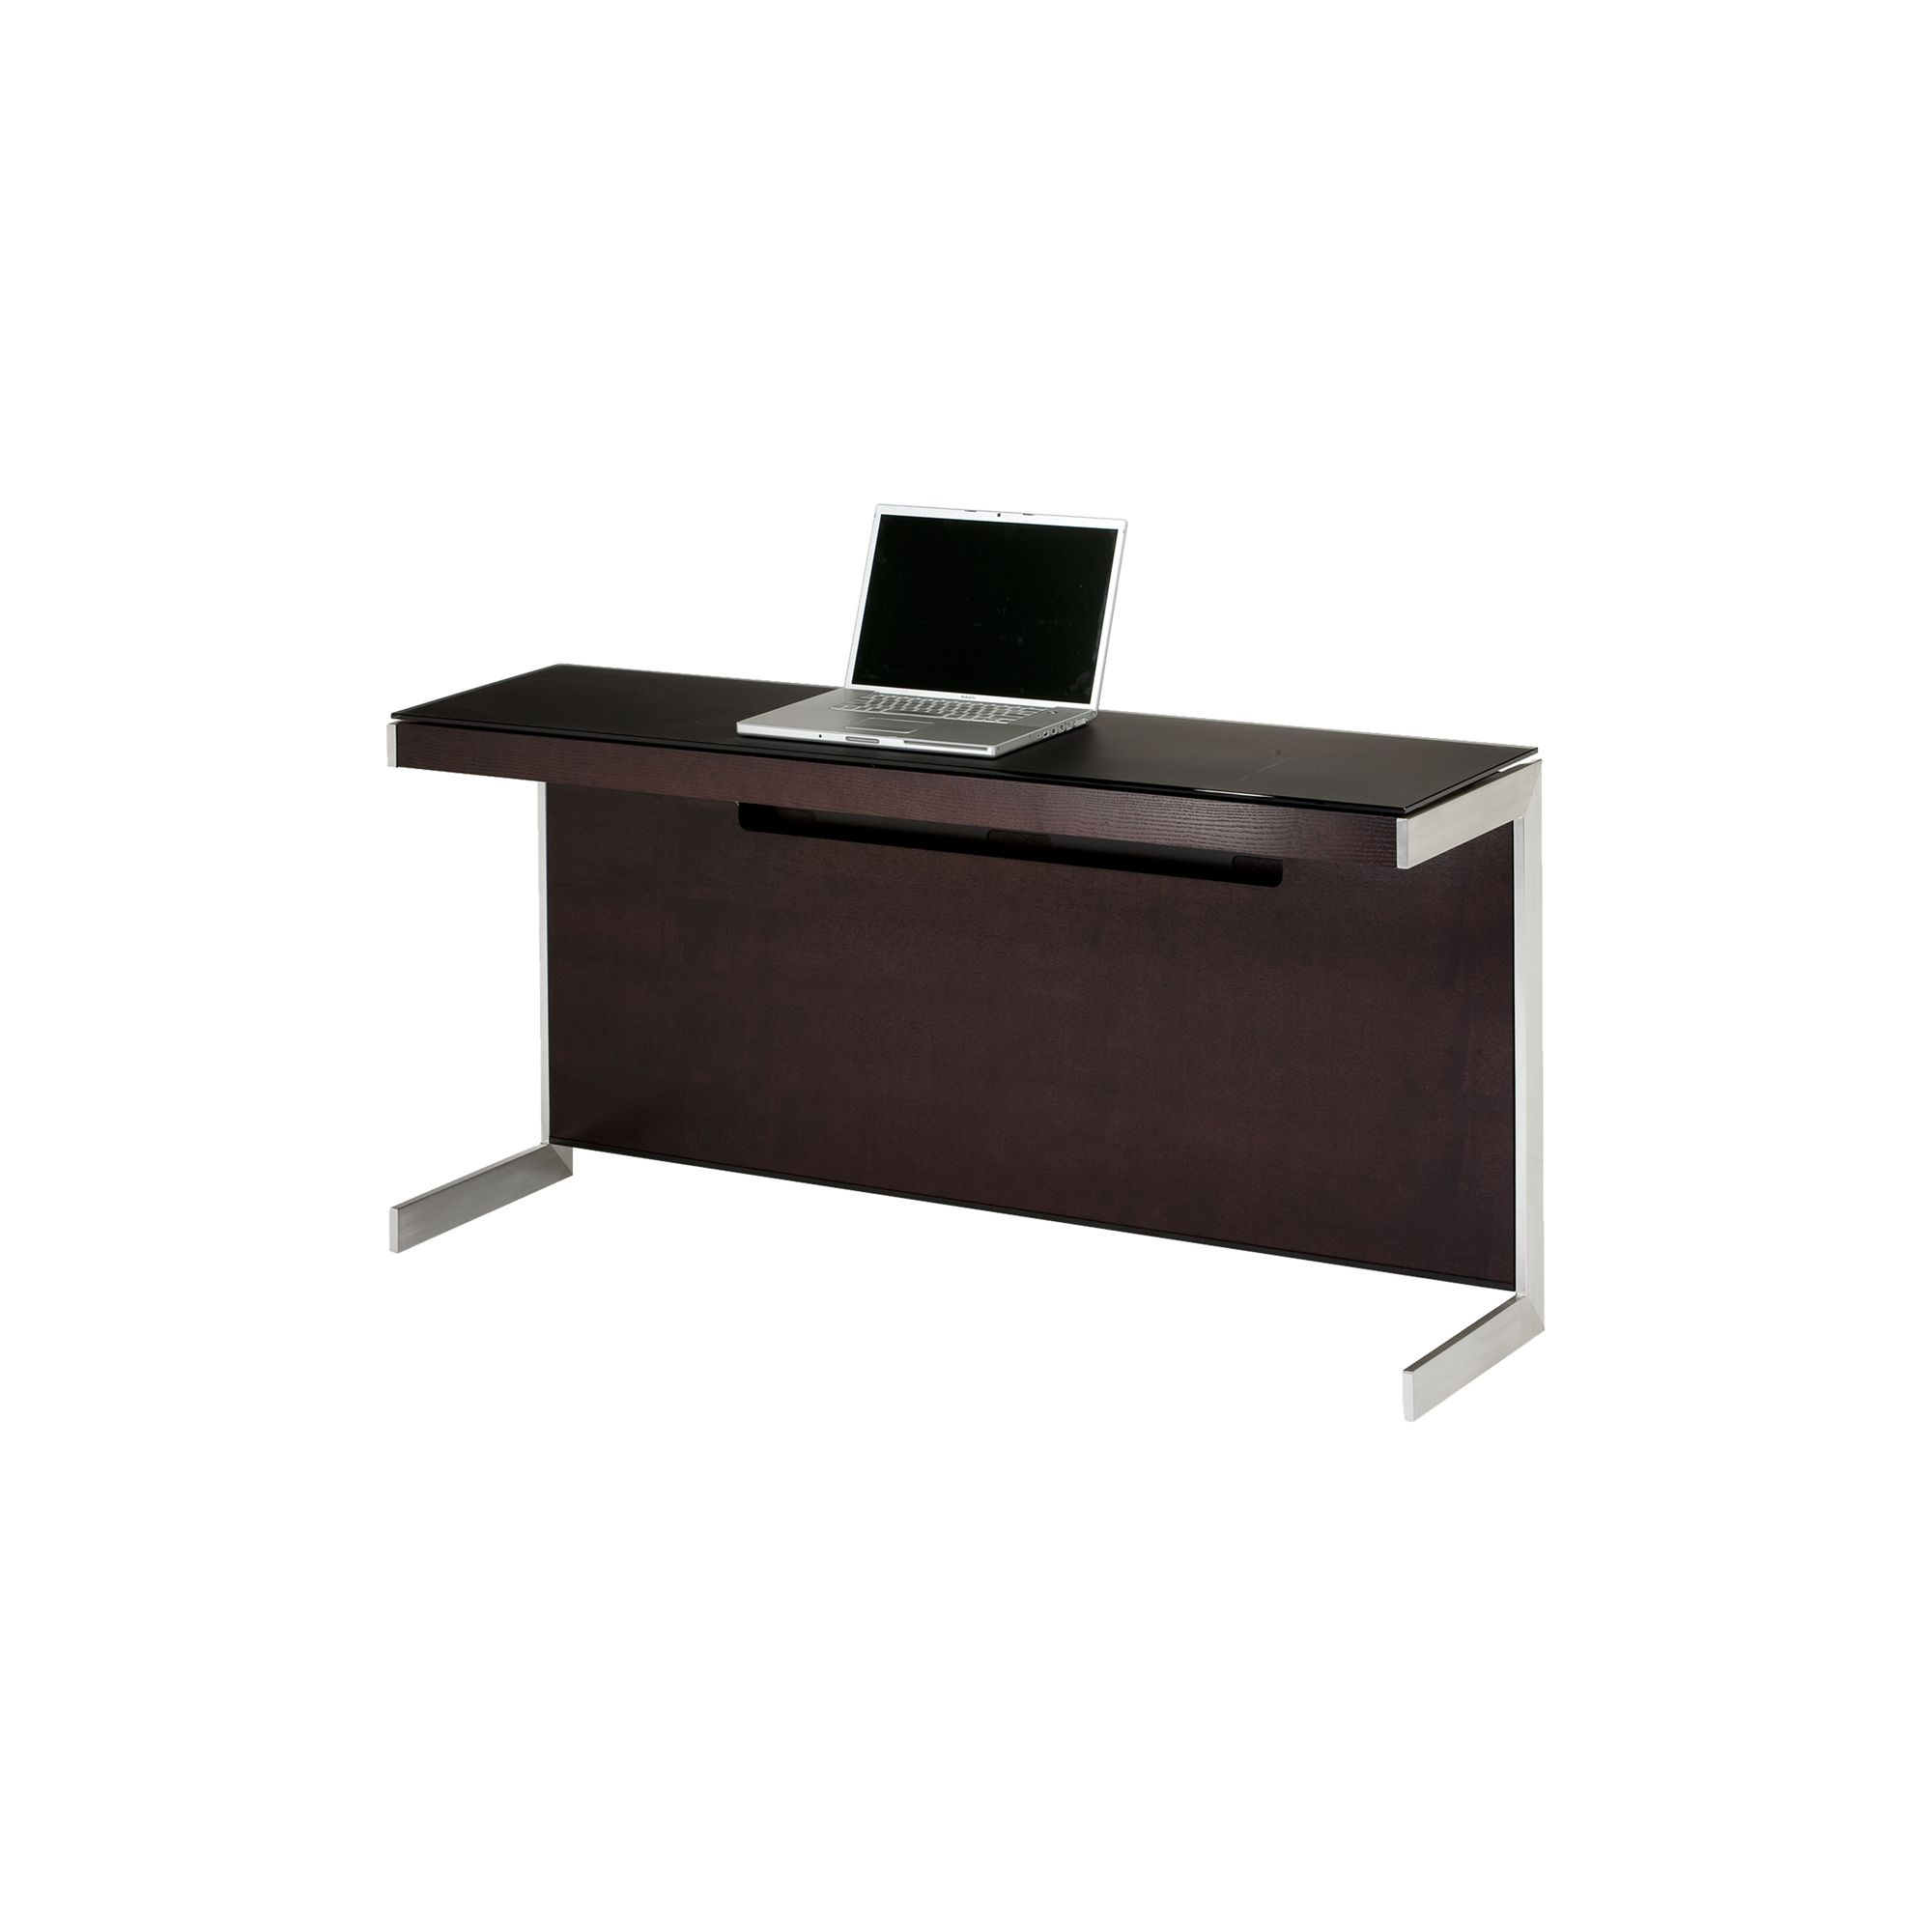 Sequel 6002 Desk in Espresso Stained oak with Glass Top at Tescos Direct